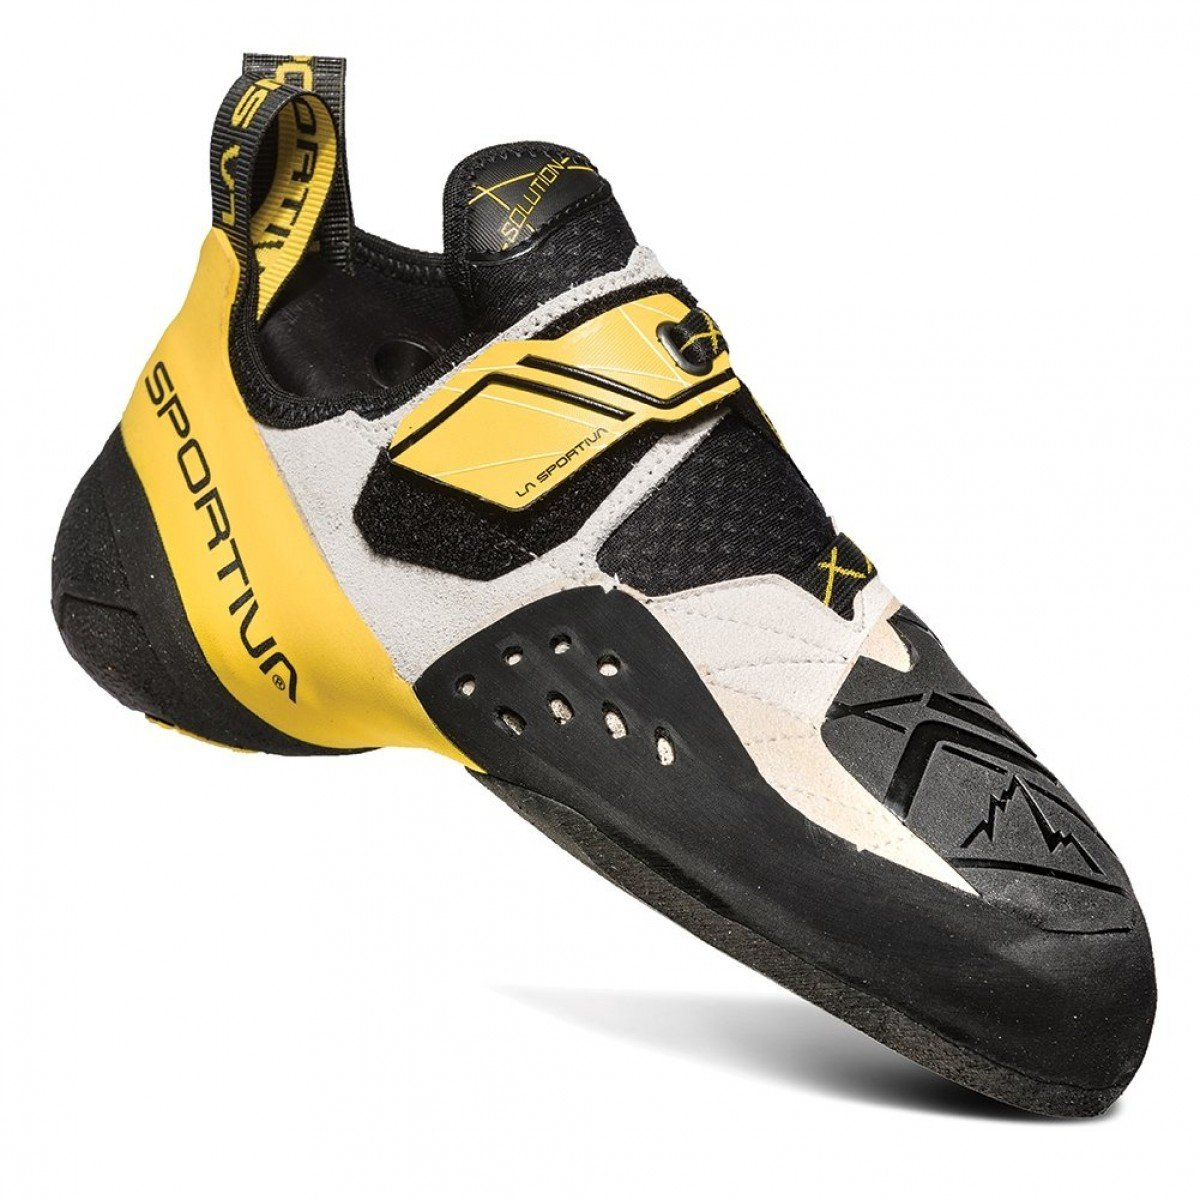 La Sportiva Solution Climbing Shoes and or Torture Devices